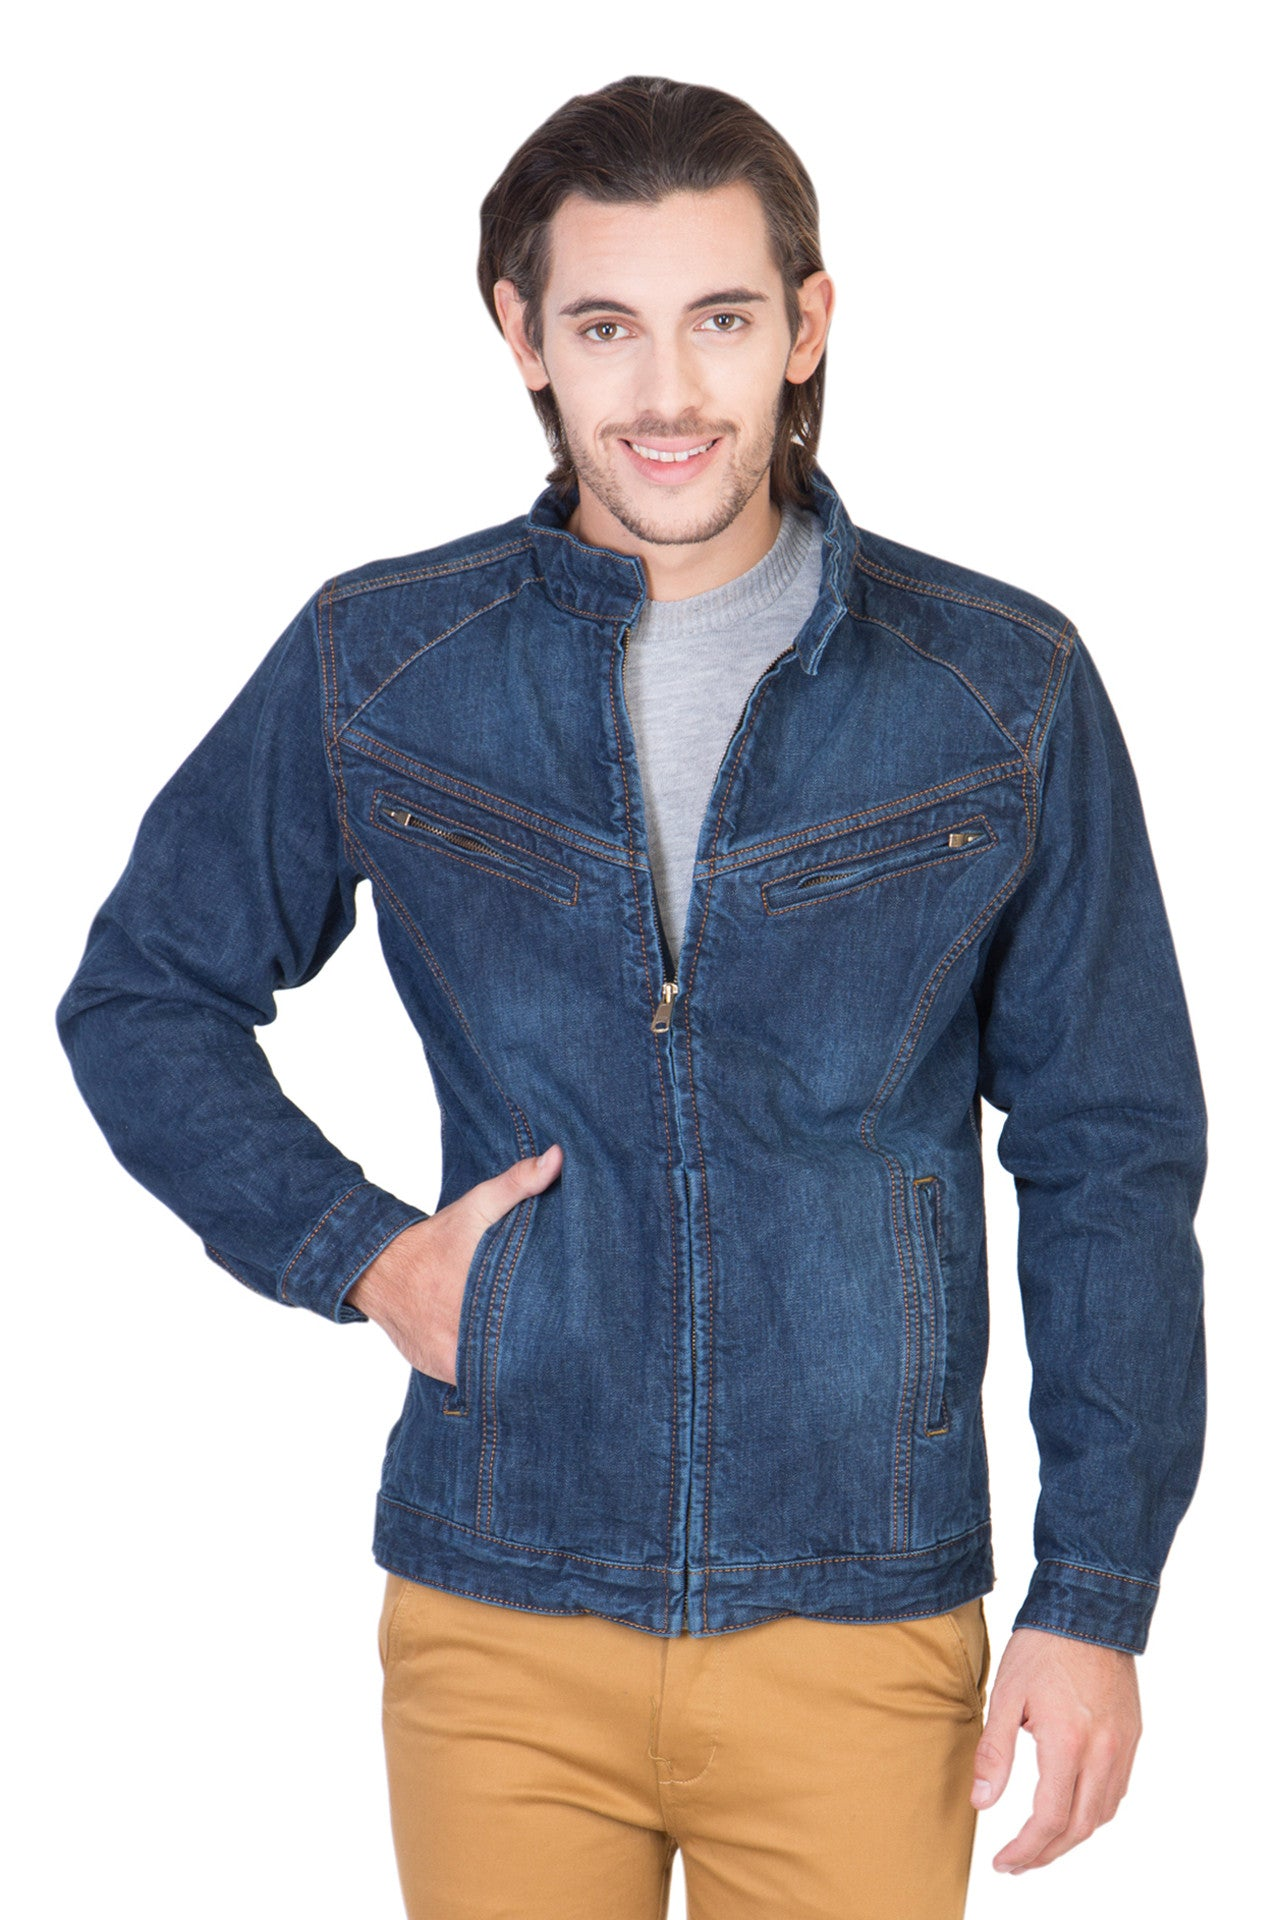 Full Sleeve Blue Men's Denim Jacket with Zipper